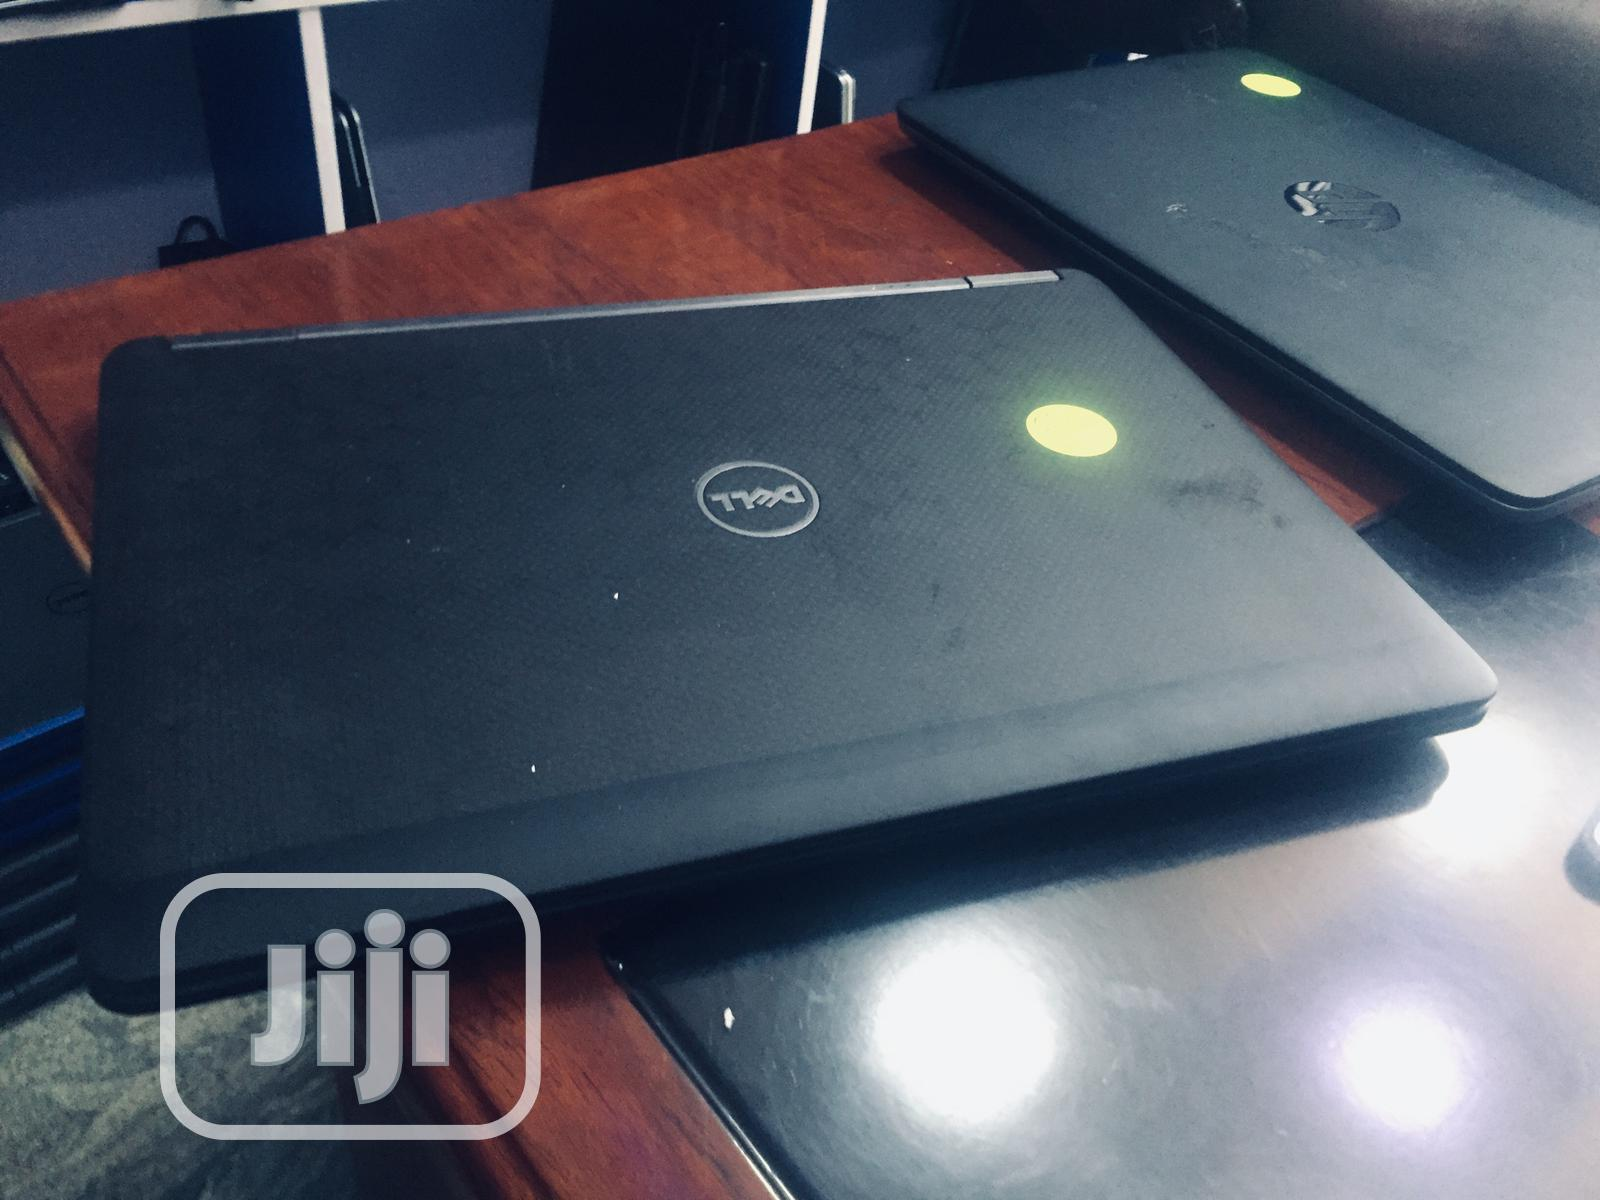 Laptop Dell Latitude 7480 8GB Intel Core I7 SSD 128GB | Laptops & Computers for sale in Wuse 2, Abuja (FCT) State, Nigeria